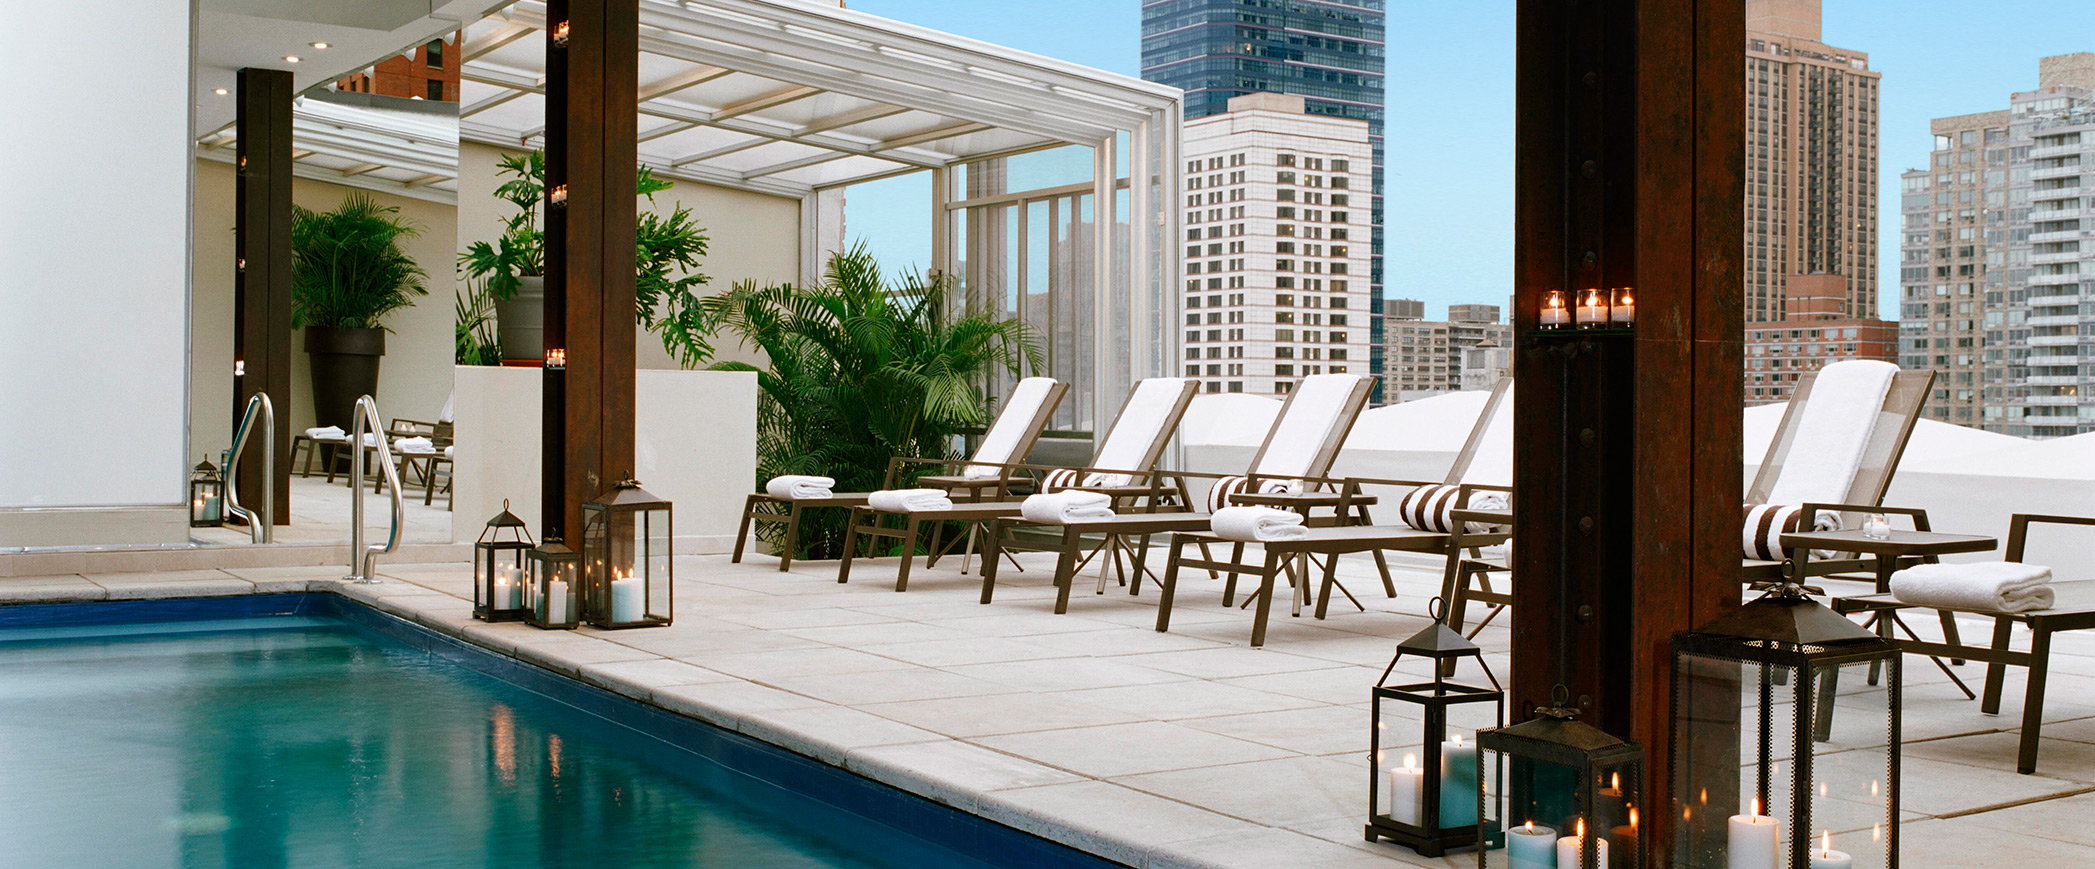 empire-hotel-nyc-midtown-roof-top-pool-deck-1